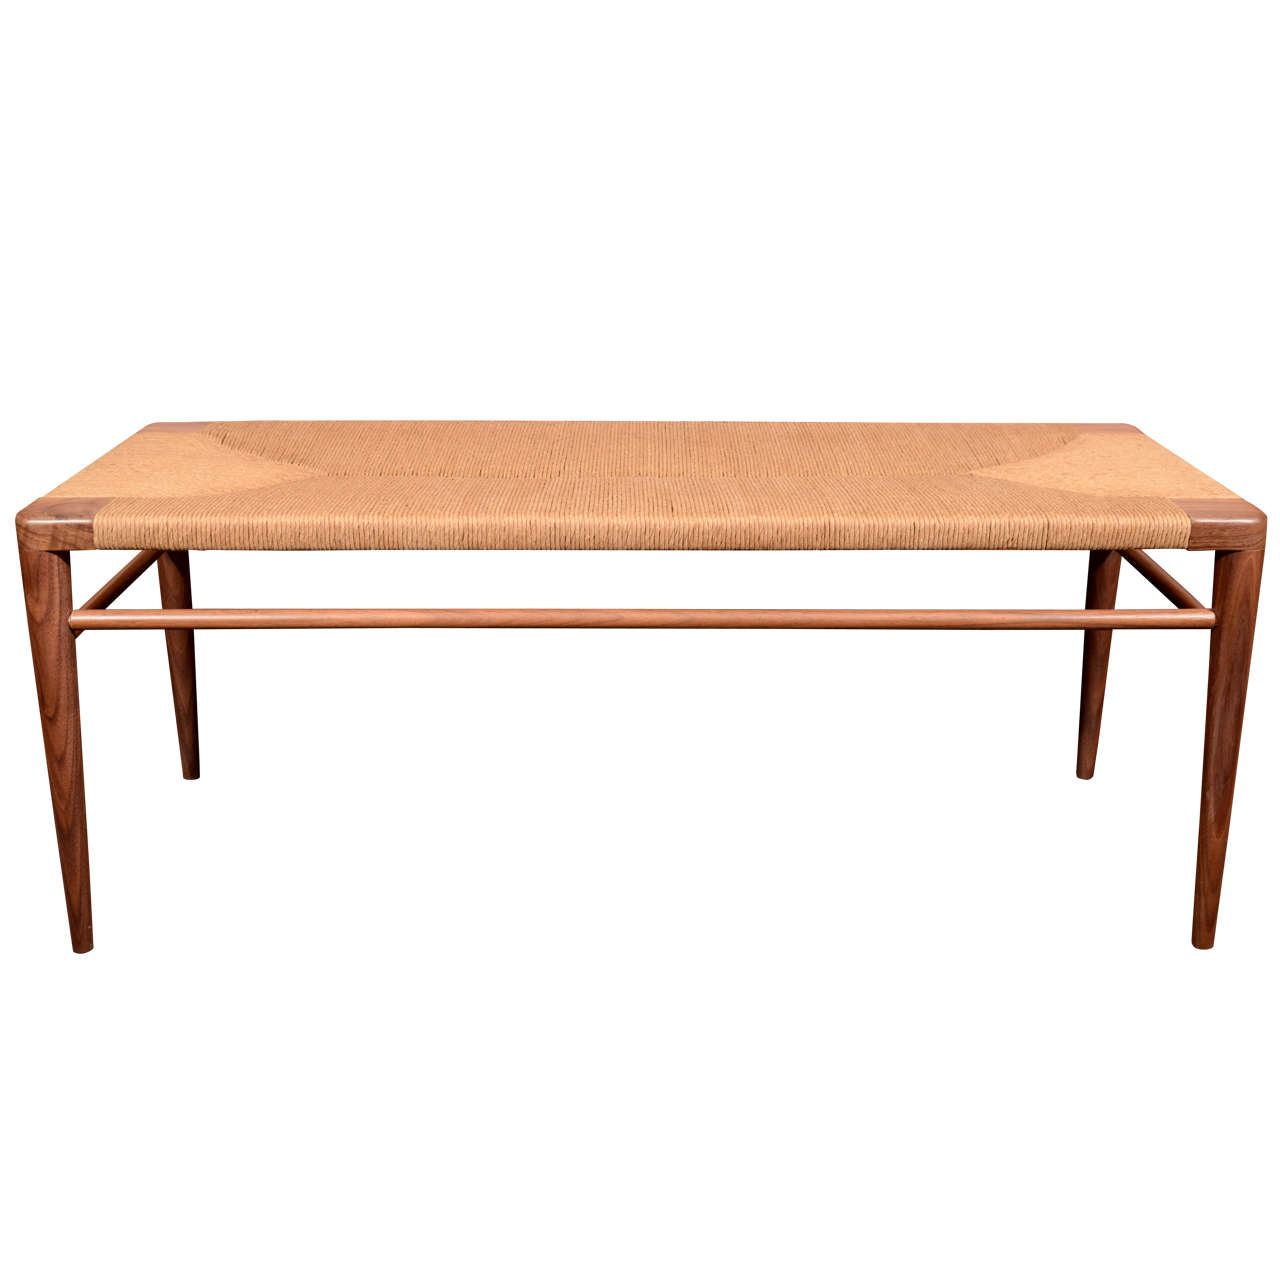 Hand Woven Rush Bench By Smilow Design At 1stdibs